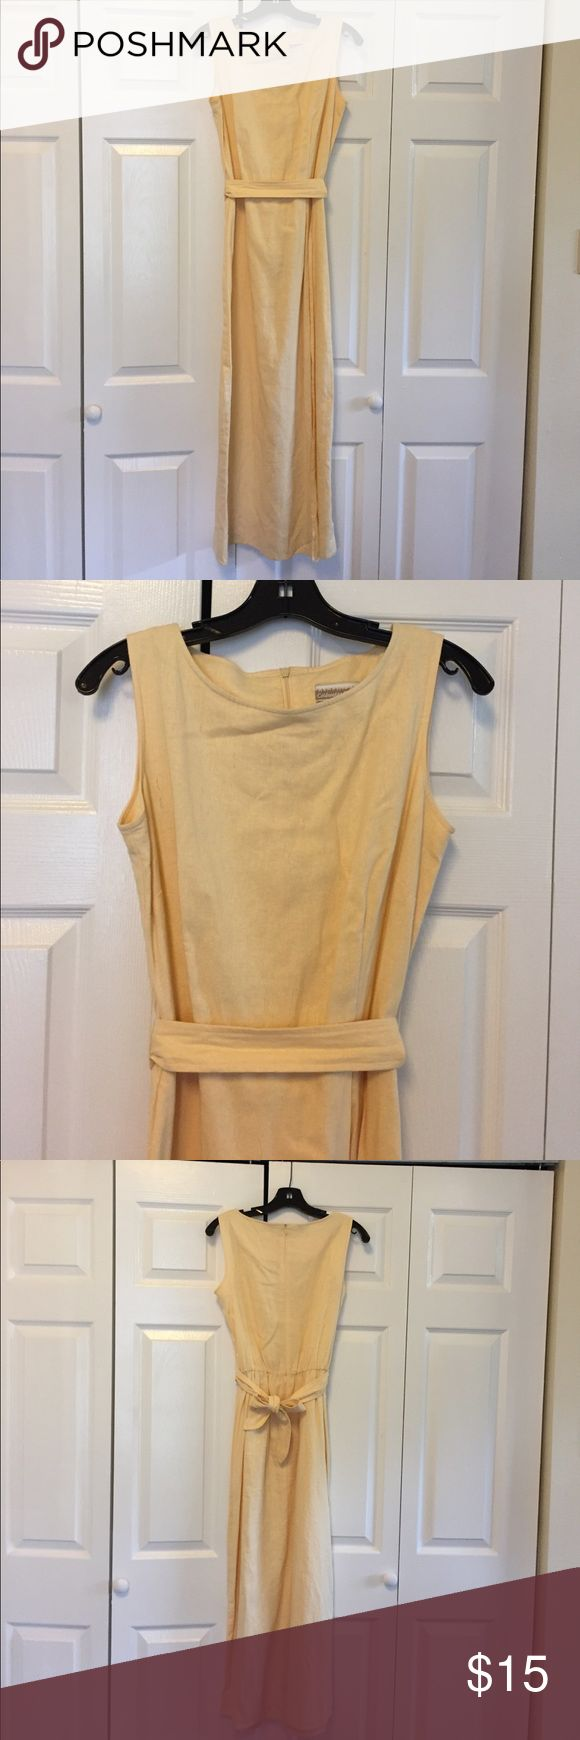 Women's Coldwater Creek Ankle Length Dress Women's Size 6 Coldwater Creek Ankle Length yellow dress with split skirt Coldwater Creek Dresses Maxi